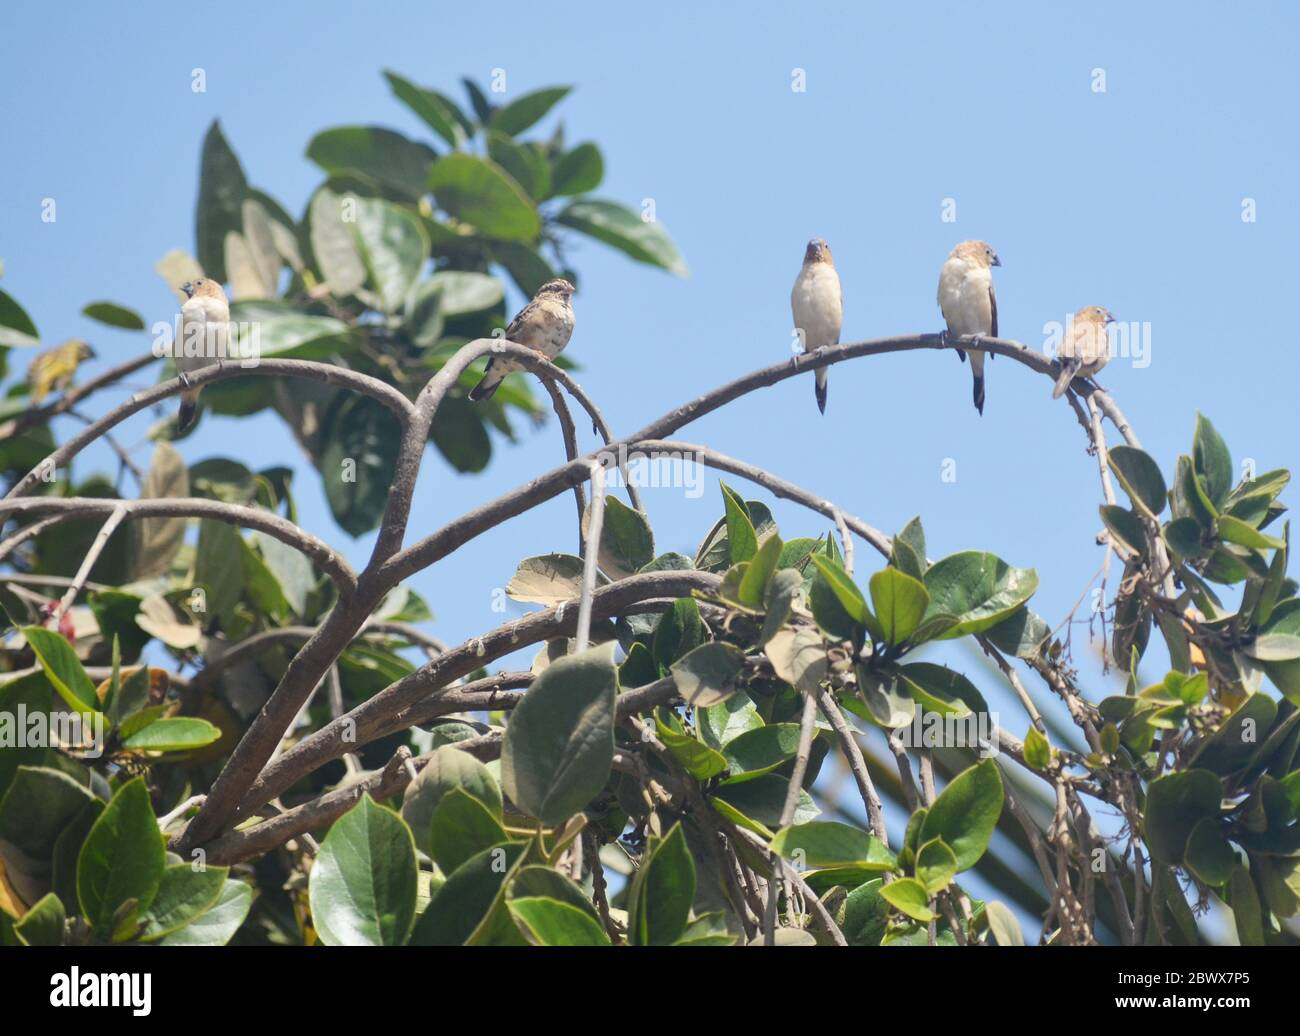 Gregarious juveniles of Red-billed firefinch (Lagonosticta senegala) perched on a tree branch in a urban garden of Dakar, Senegal Stock Photo